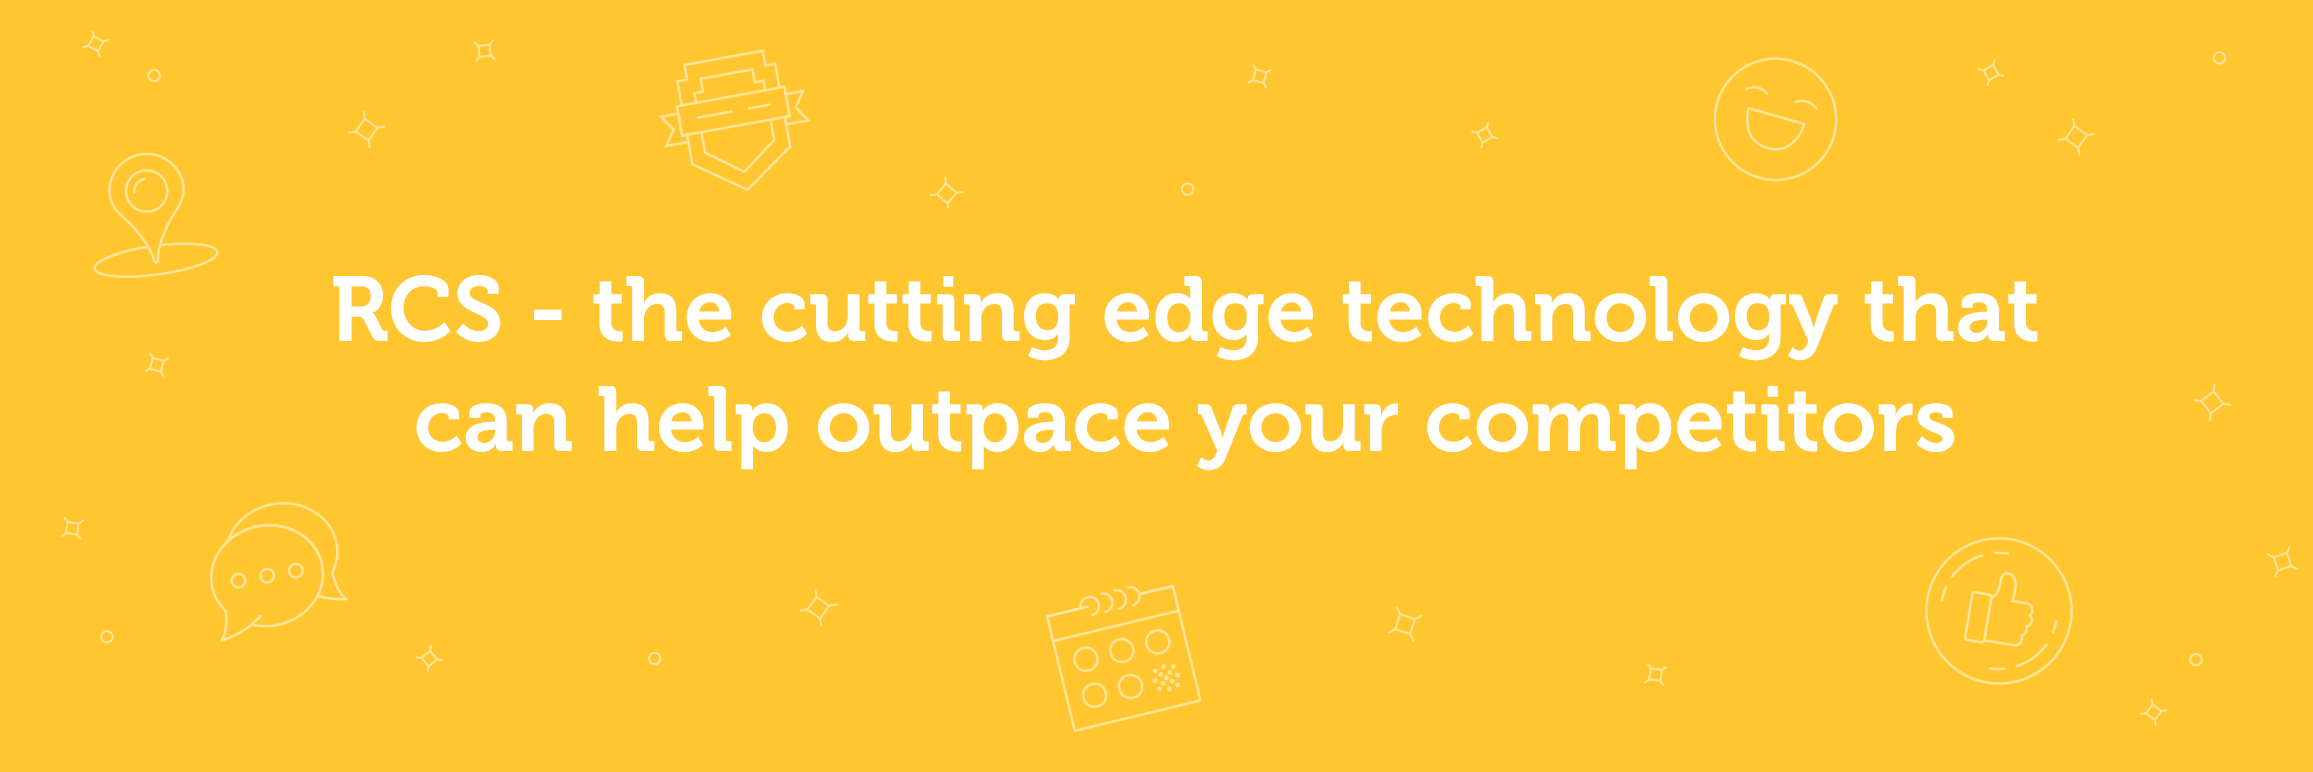 RCS - the cutting edge technology that can help outpace your competitors